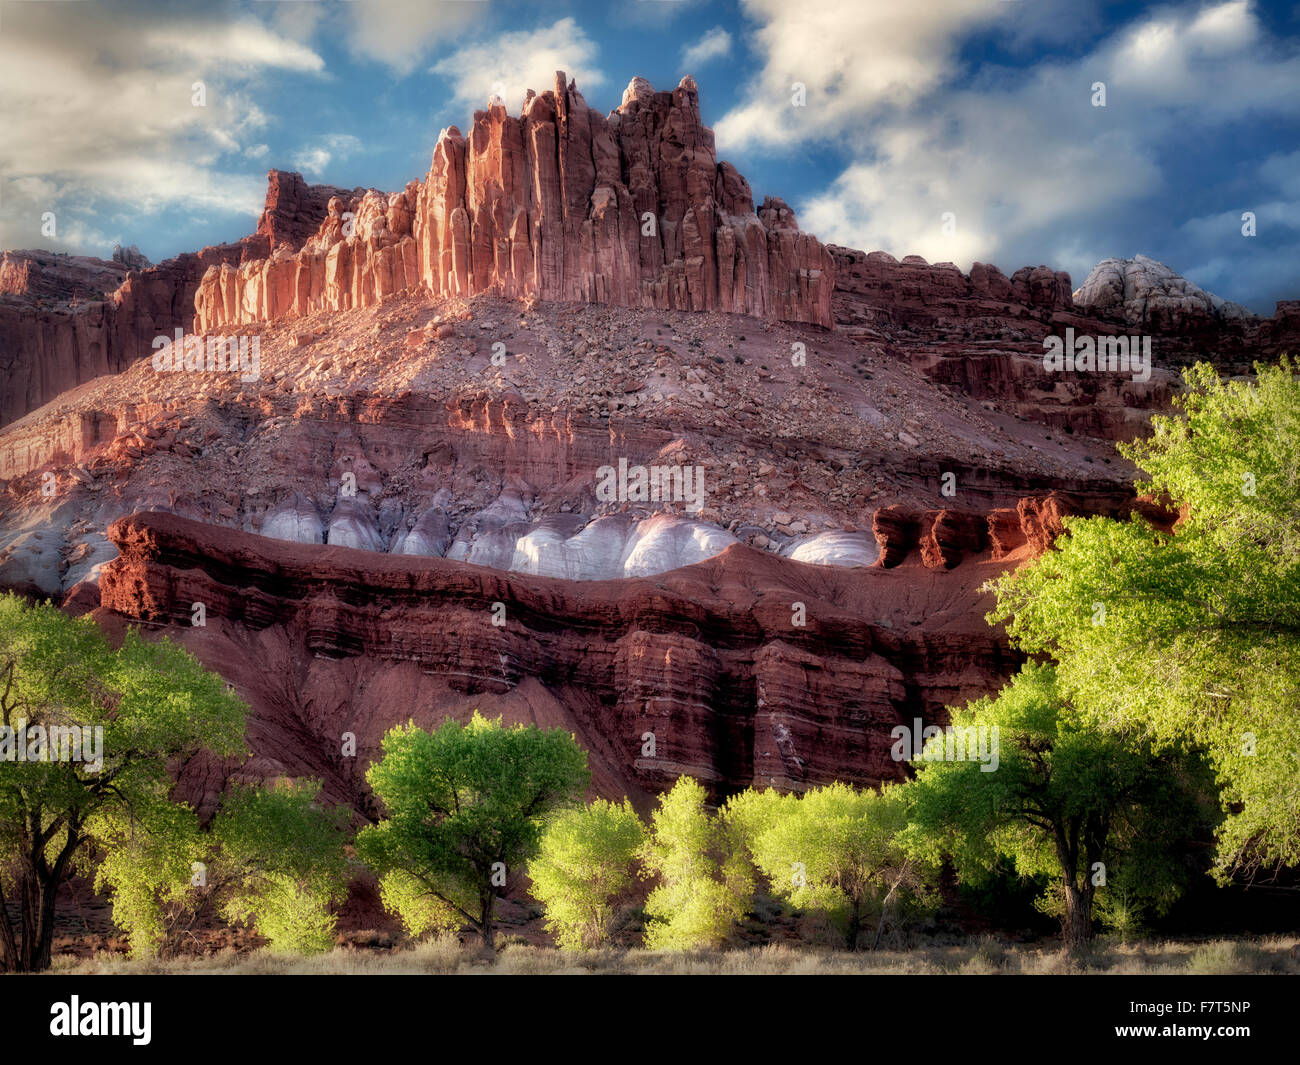 The Castle with cottonwood trees with new spring growth. Fruita, Capitol Reef National Park, Utah - Stock Image